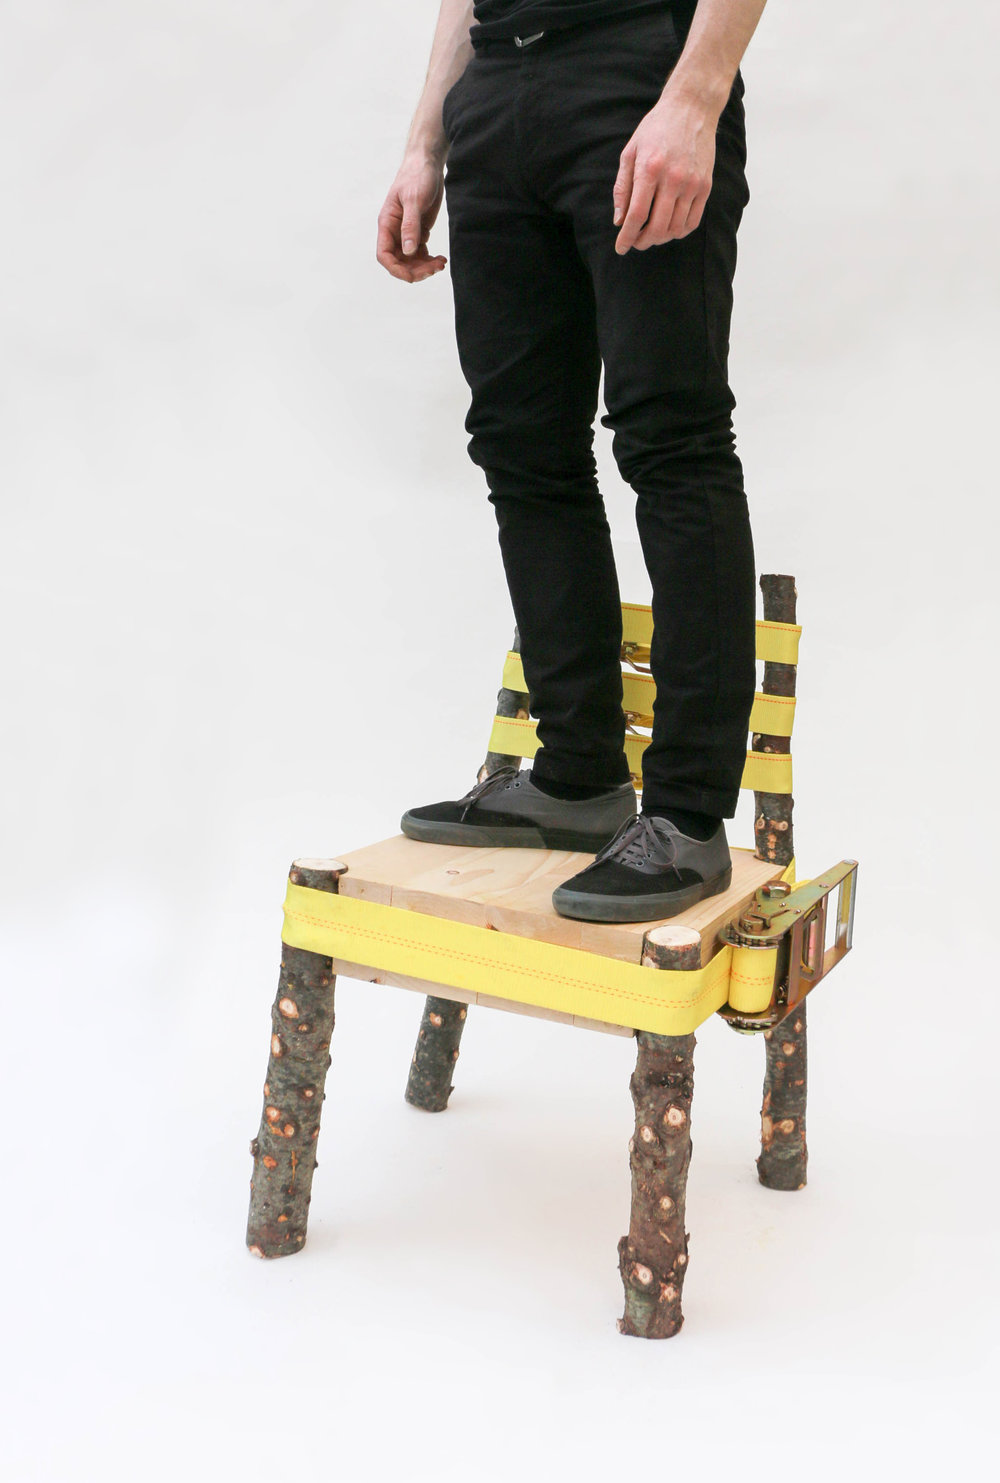 strap-chair-standing-nicholas-baker